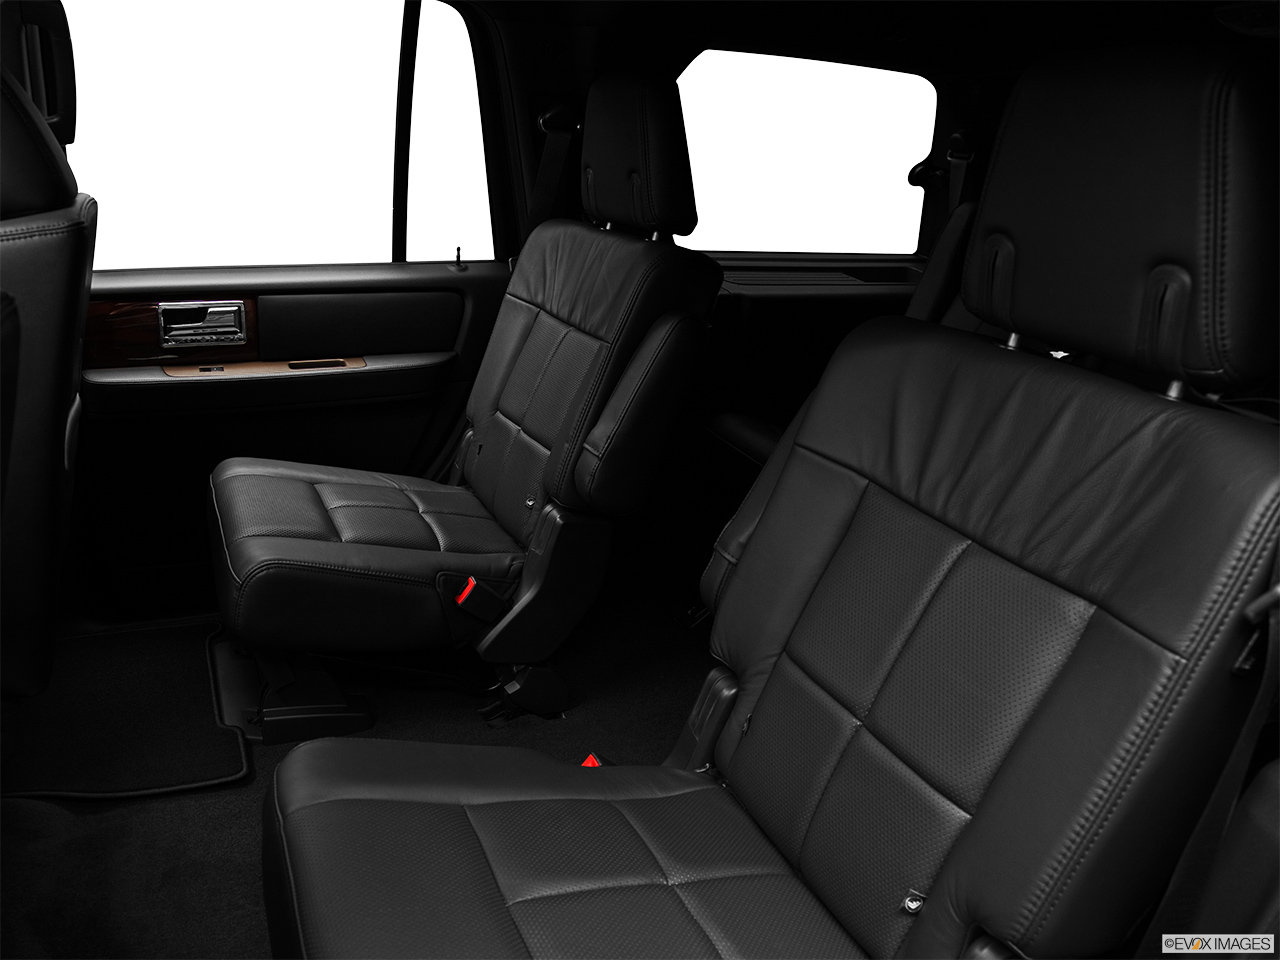 2012 Lincoln Navigator Base Rear seats from Drivers Side.